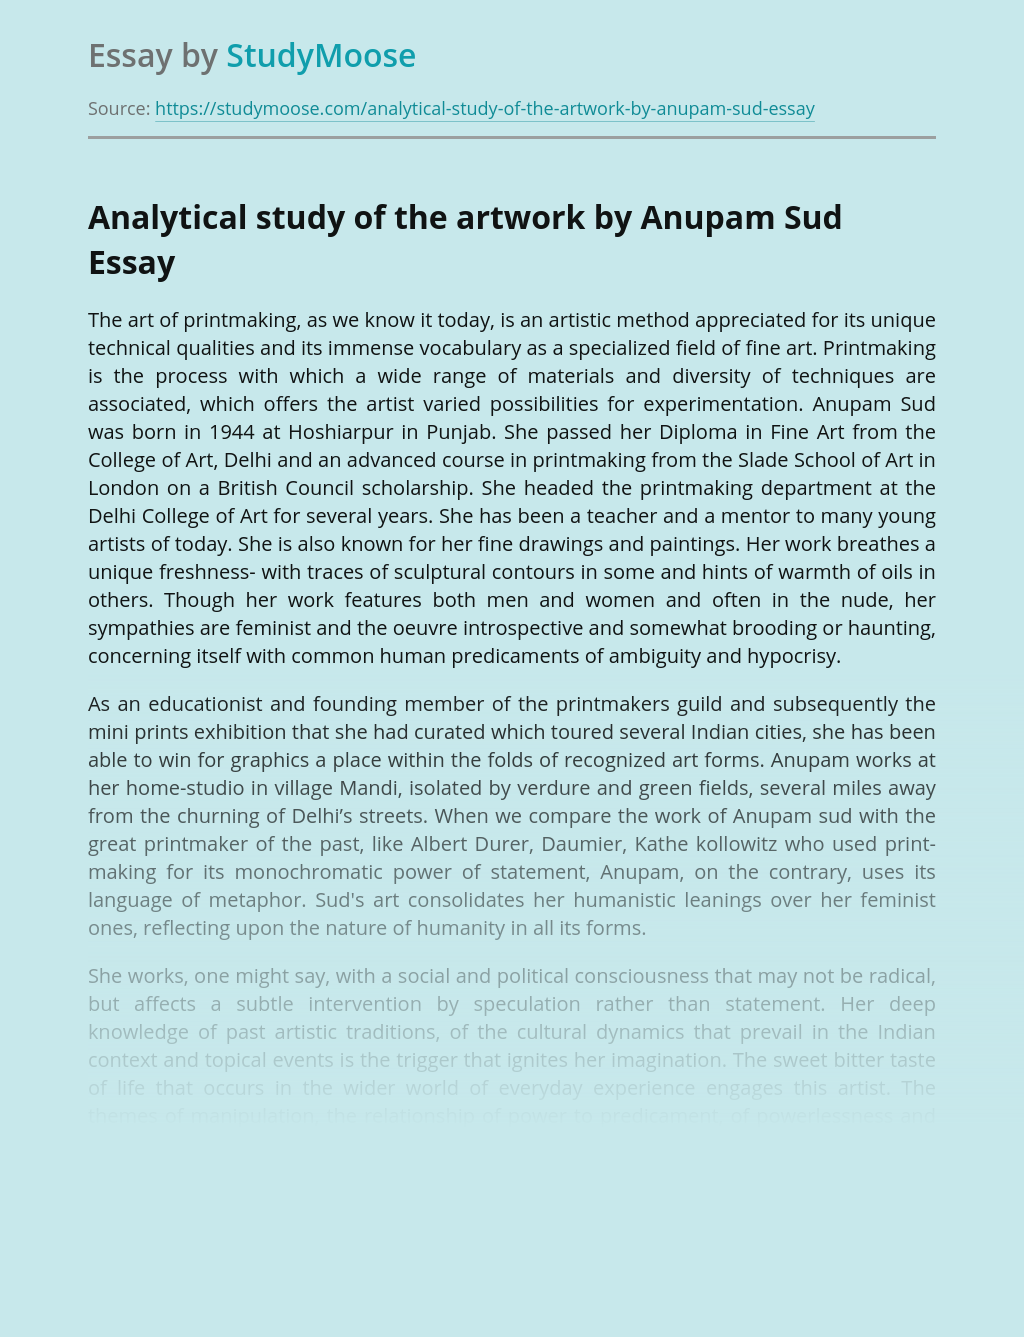 Analytical study of the artwork by Anupam Sud